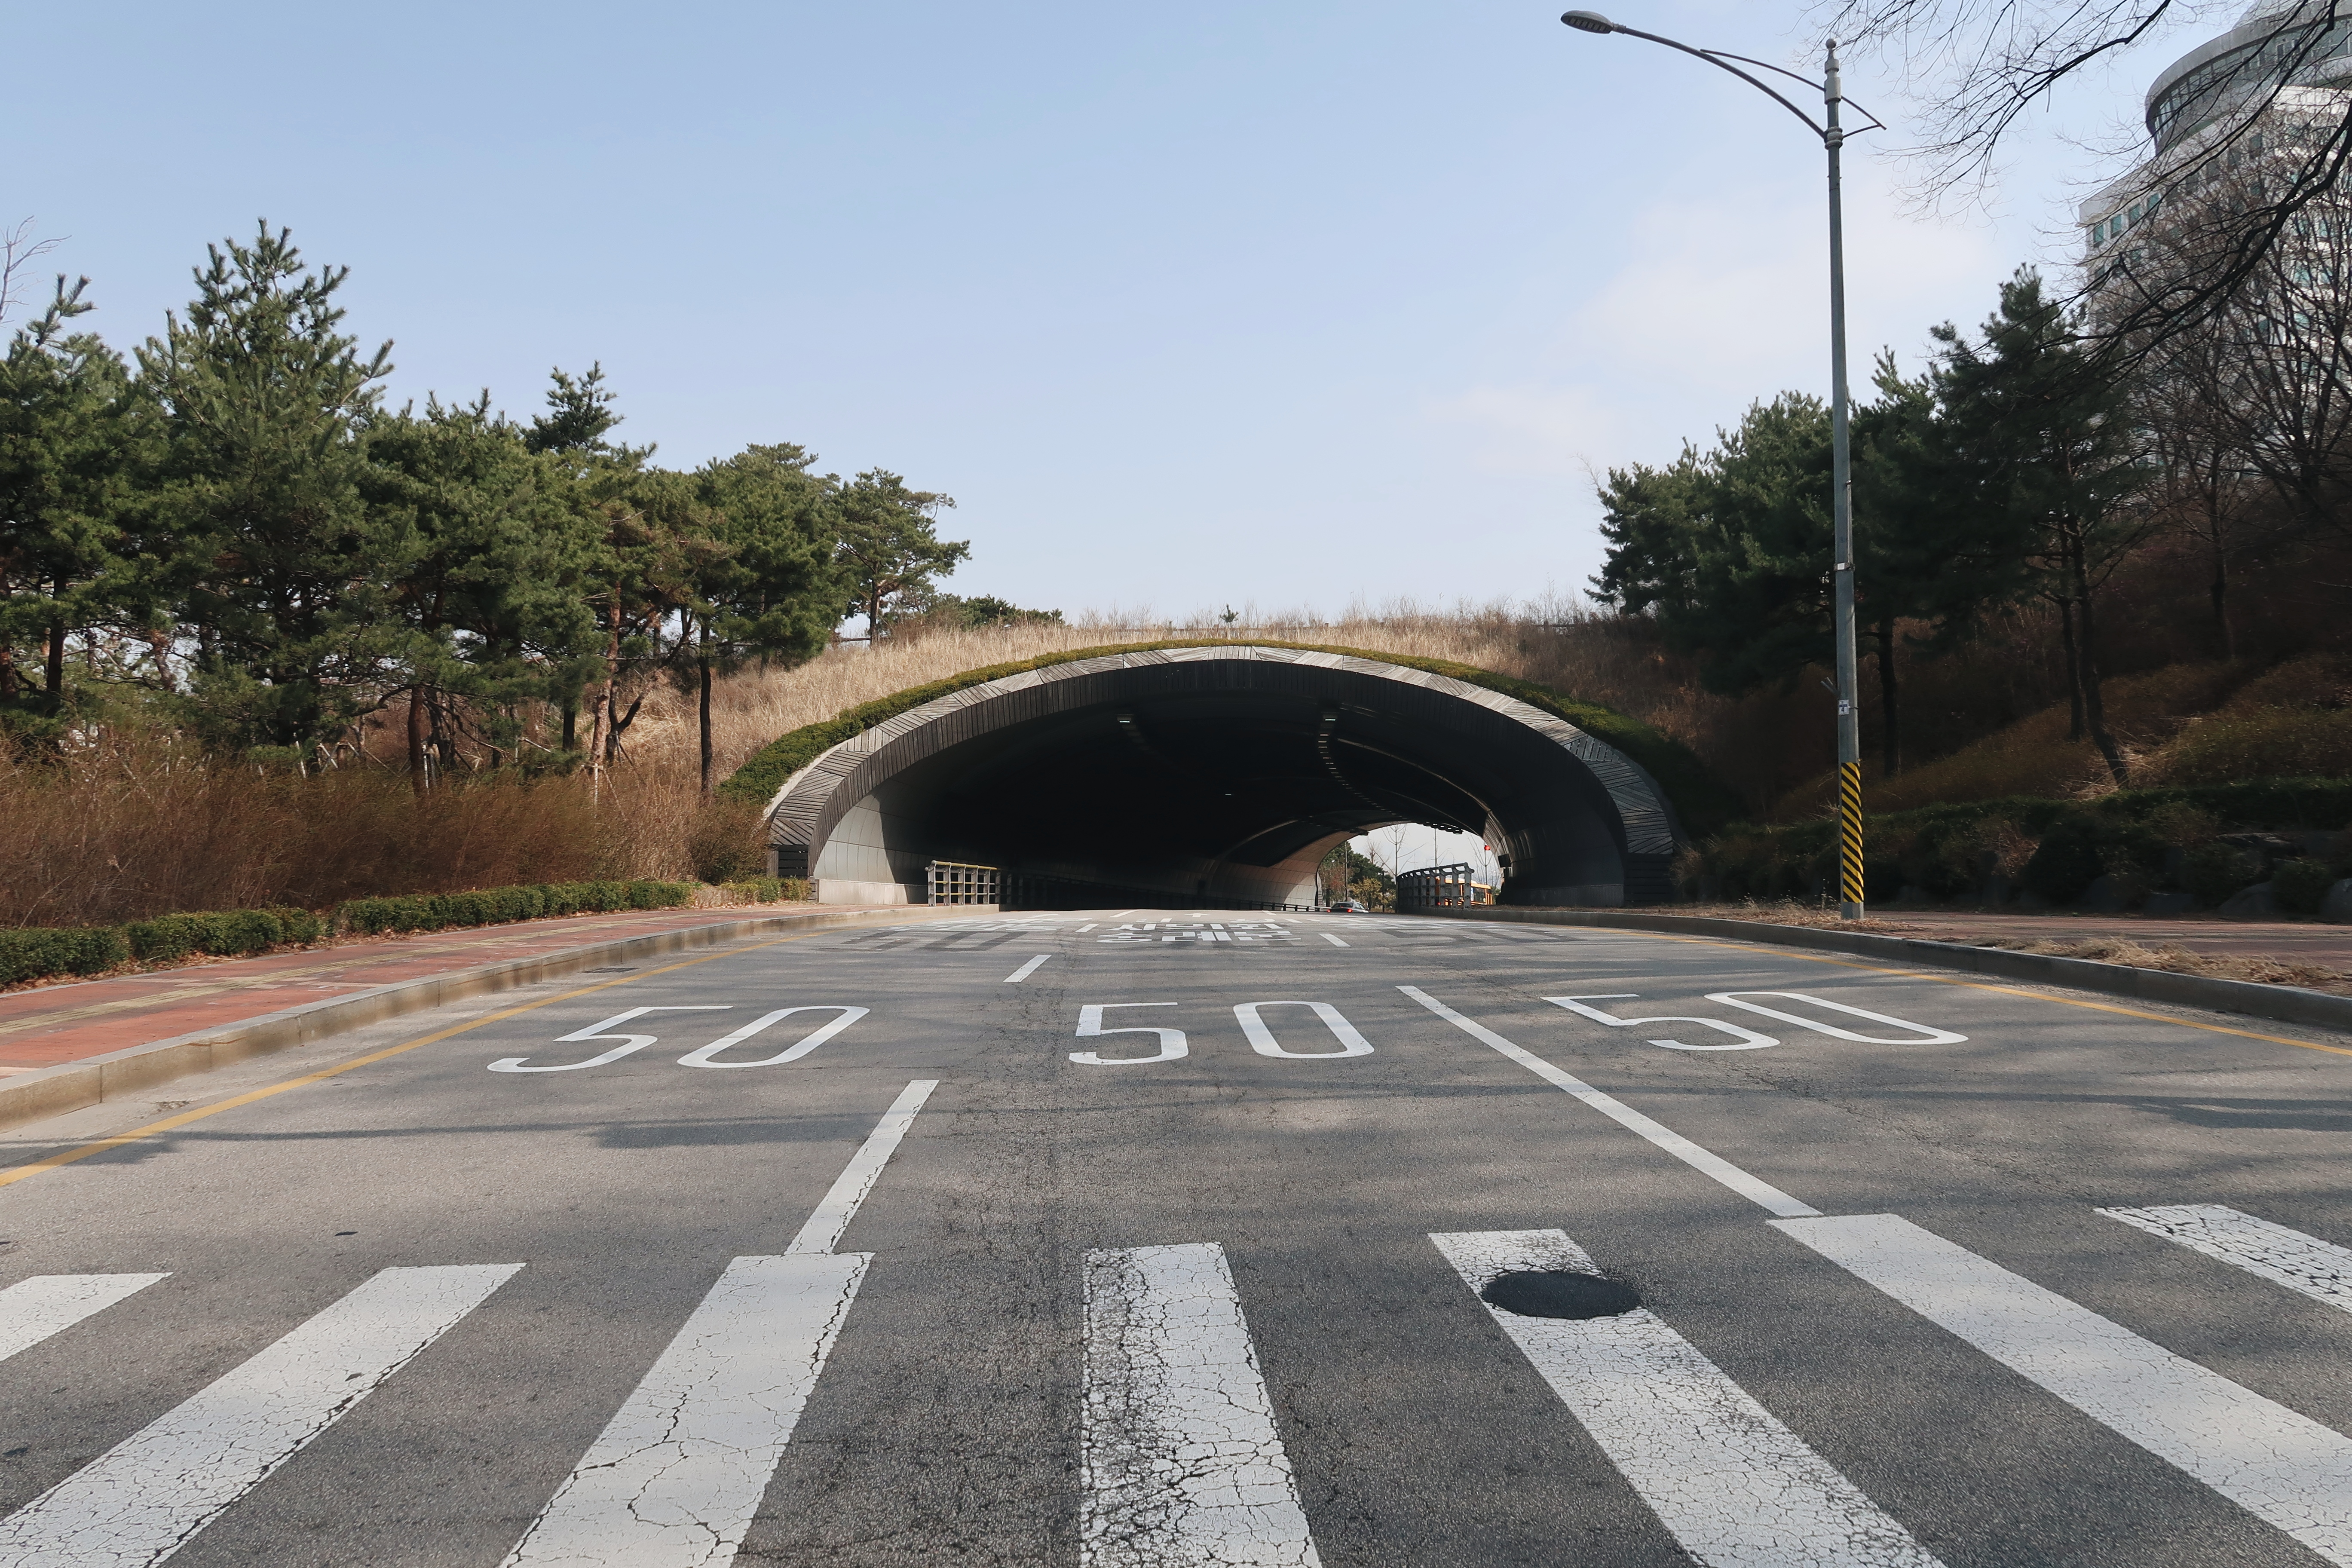 A photo of an empty road with an overpass that has grass on it (Seoul)